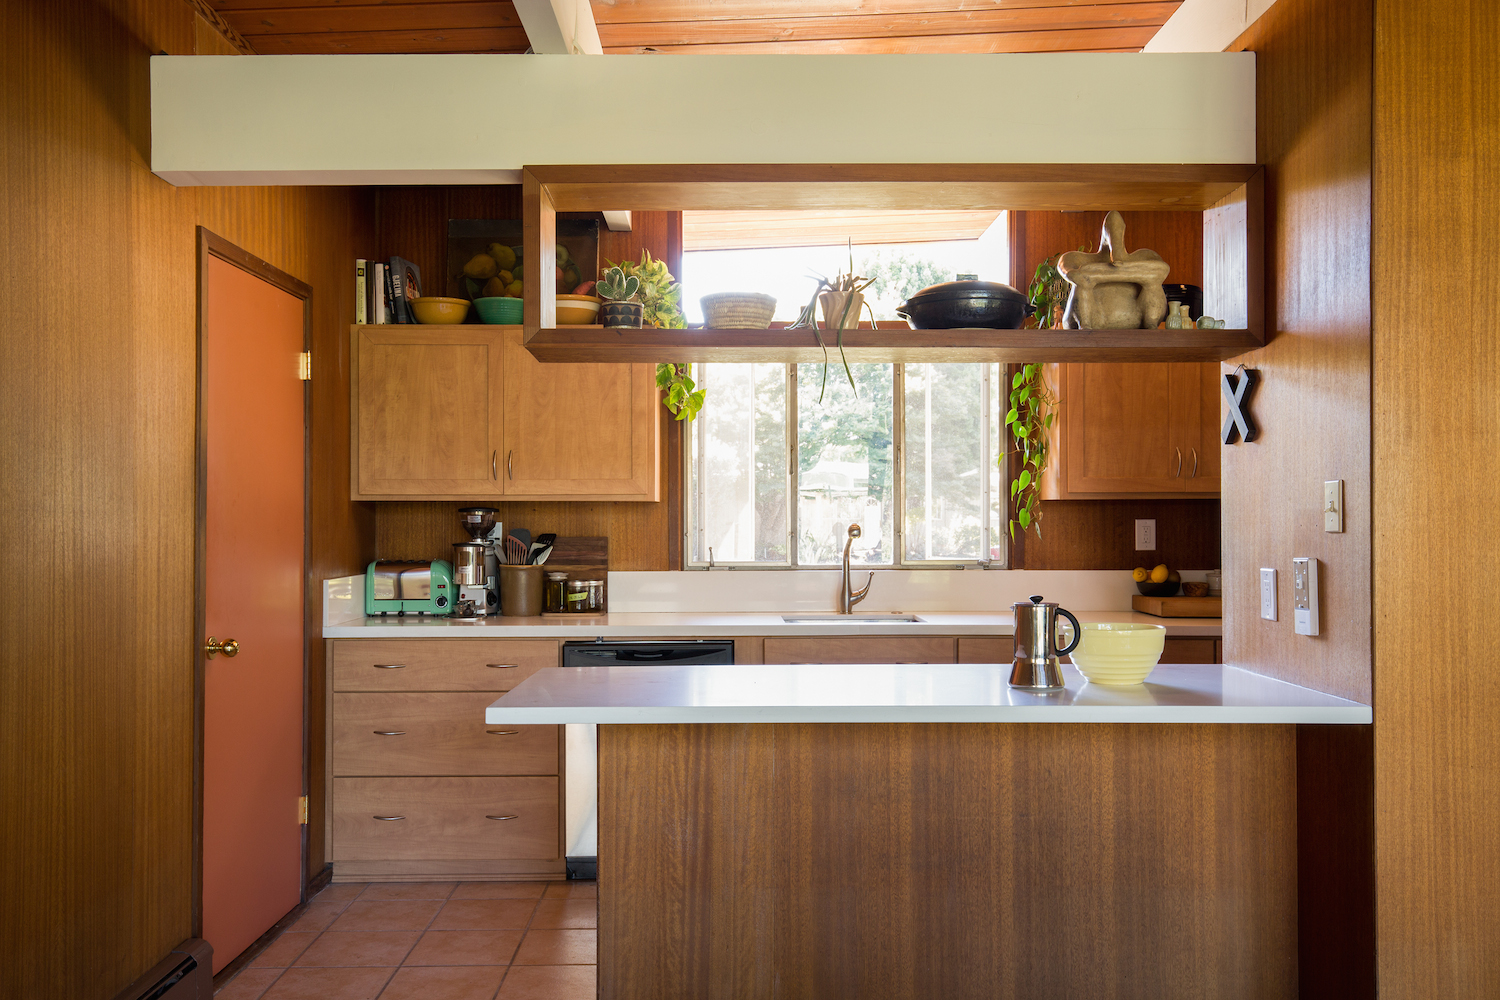 Good 20 Charming Midcentury Kitchens, Ranked From Virtually Untouched ...